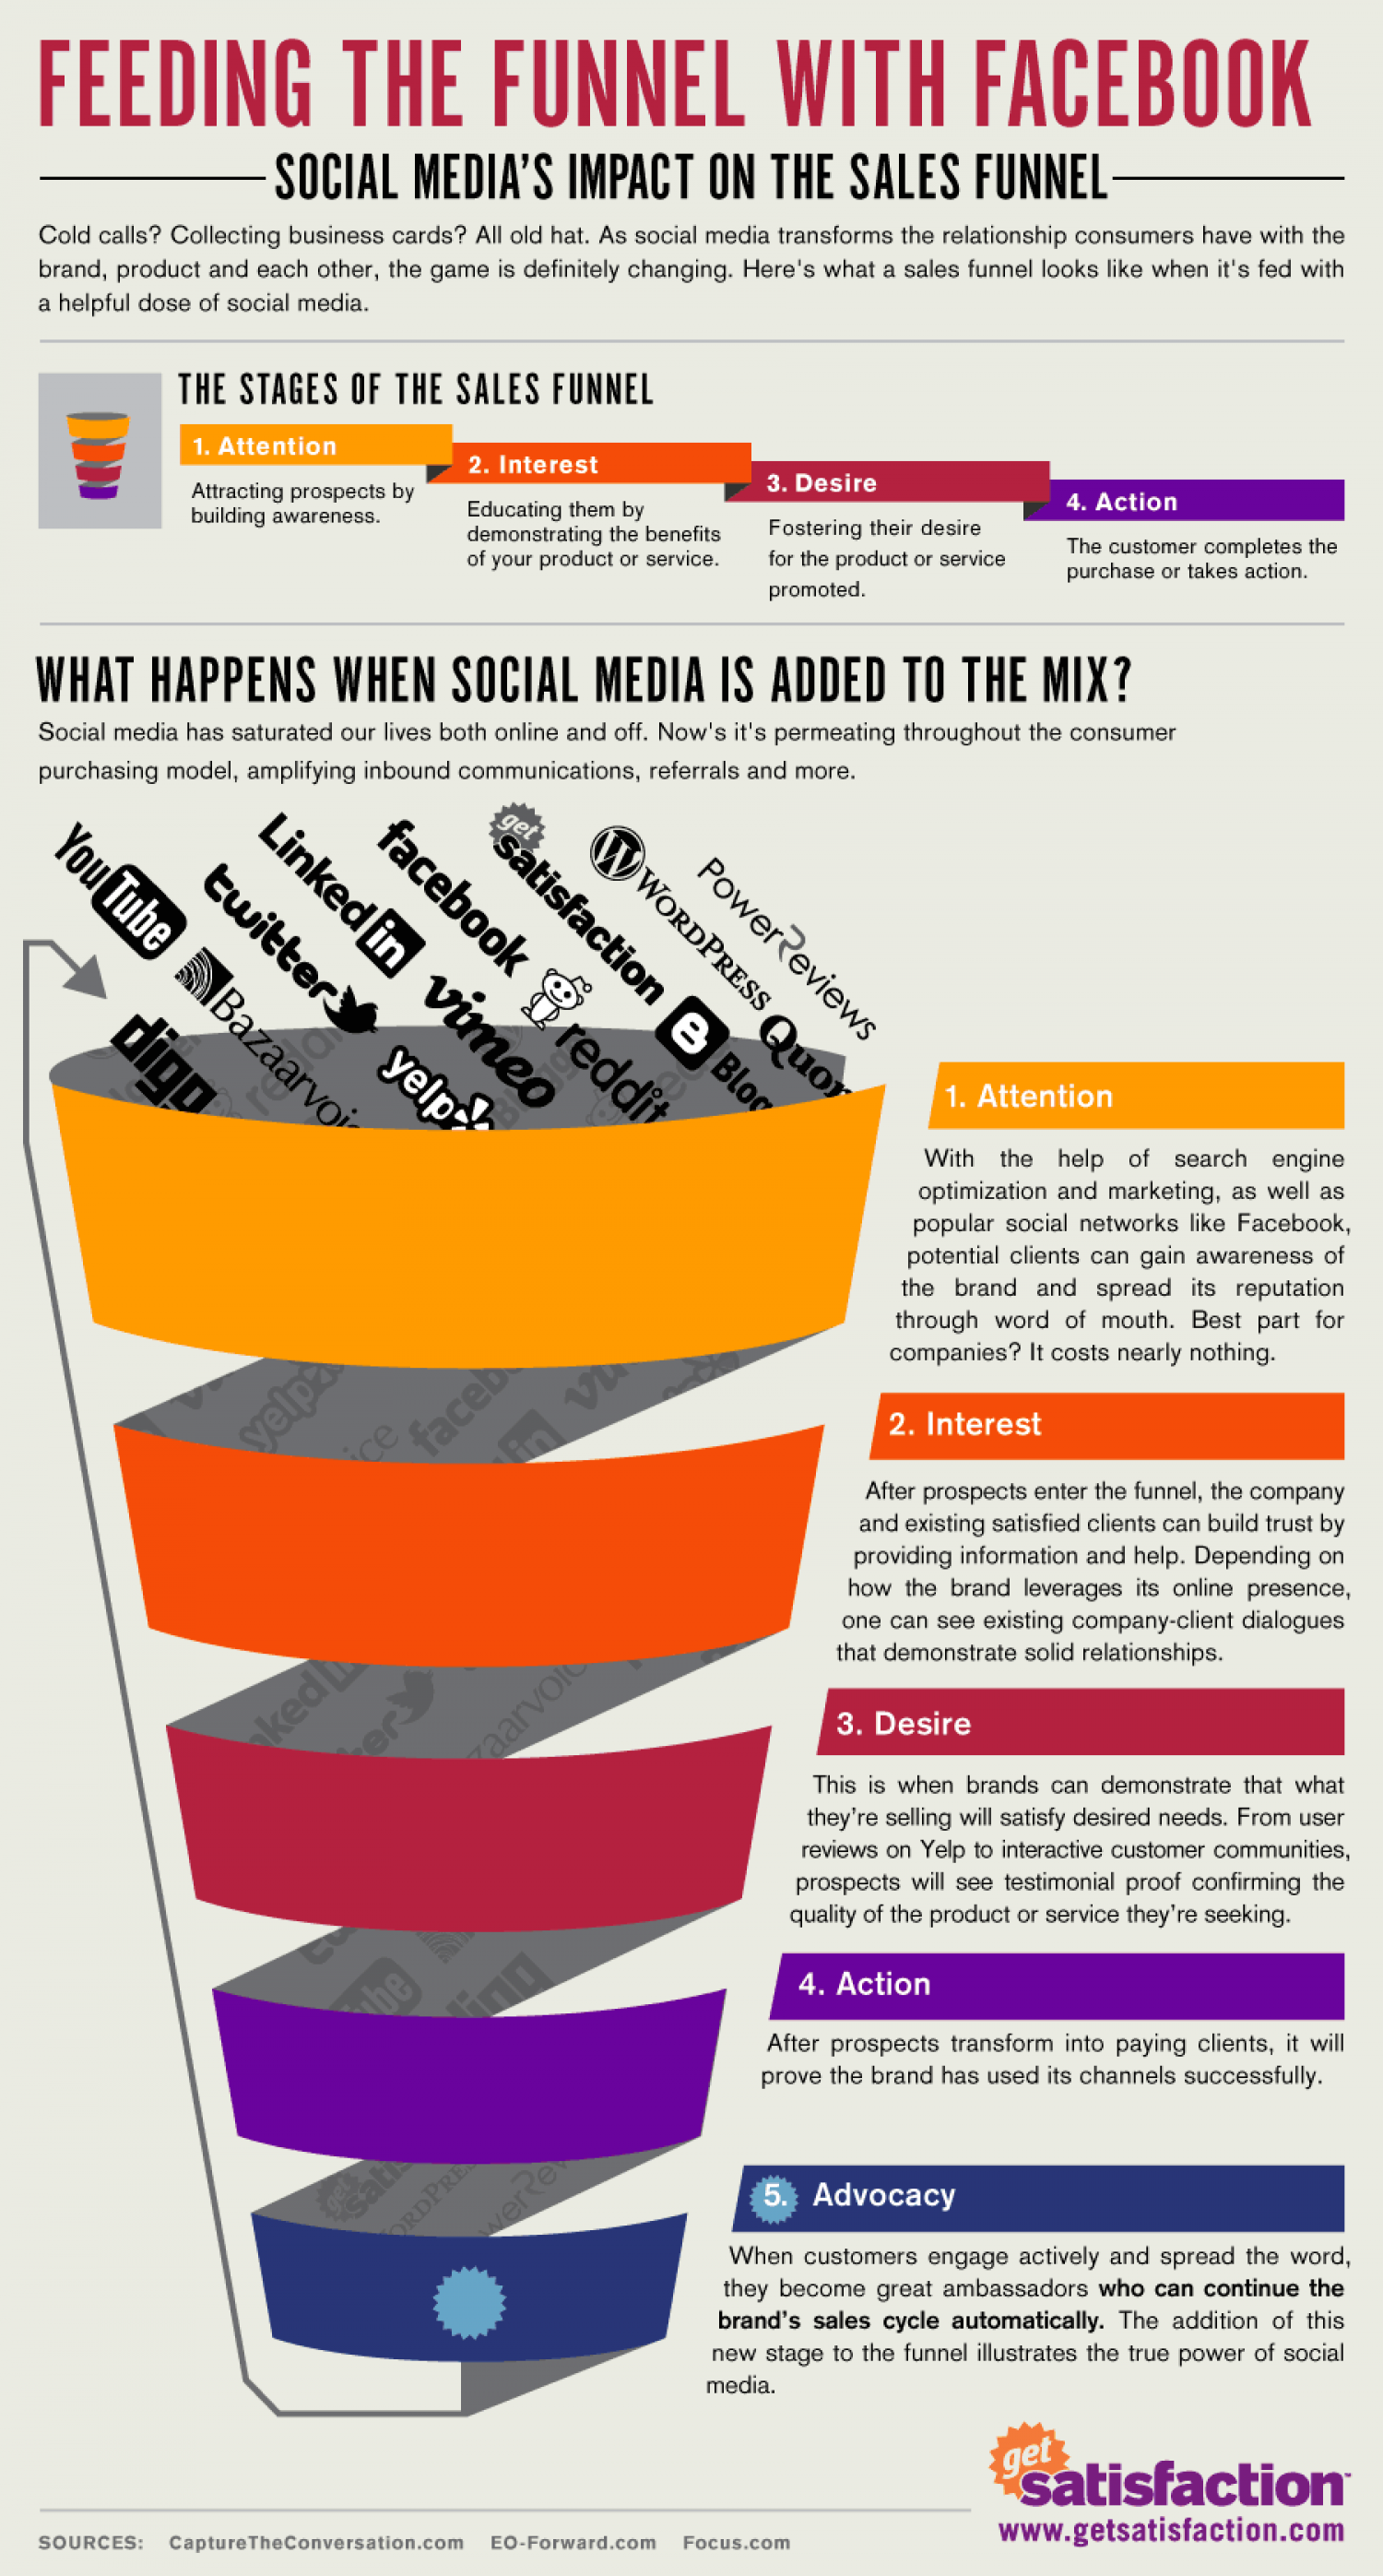 Feeding the Funnel with Facebook Infographic